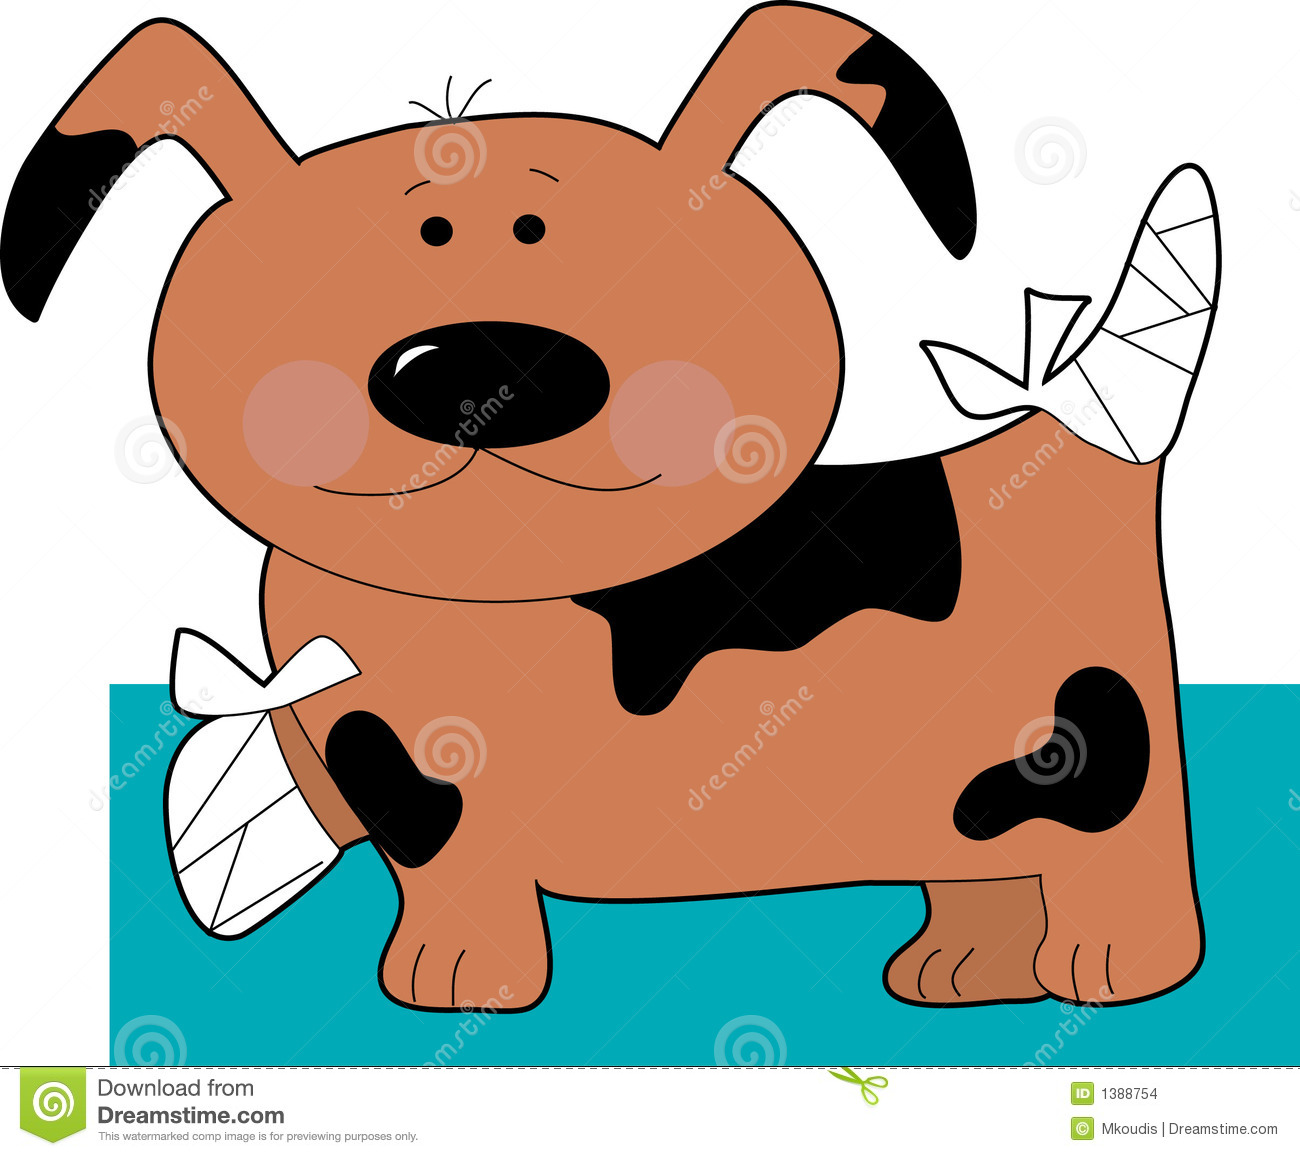 Little Dog In Bandages Stock Images - Image: 1388754 Graphic Equalizer Vector